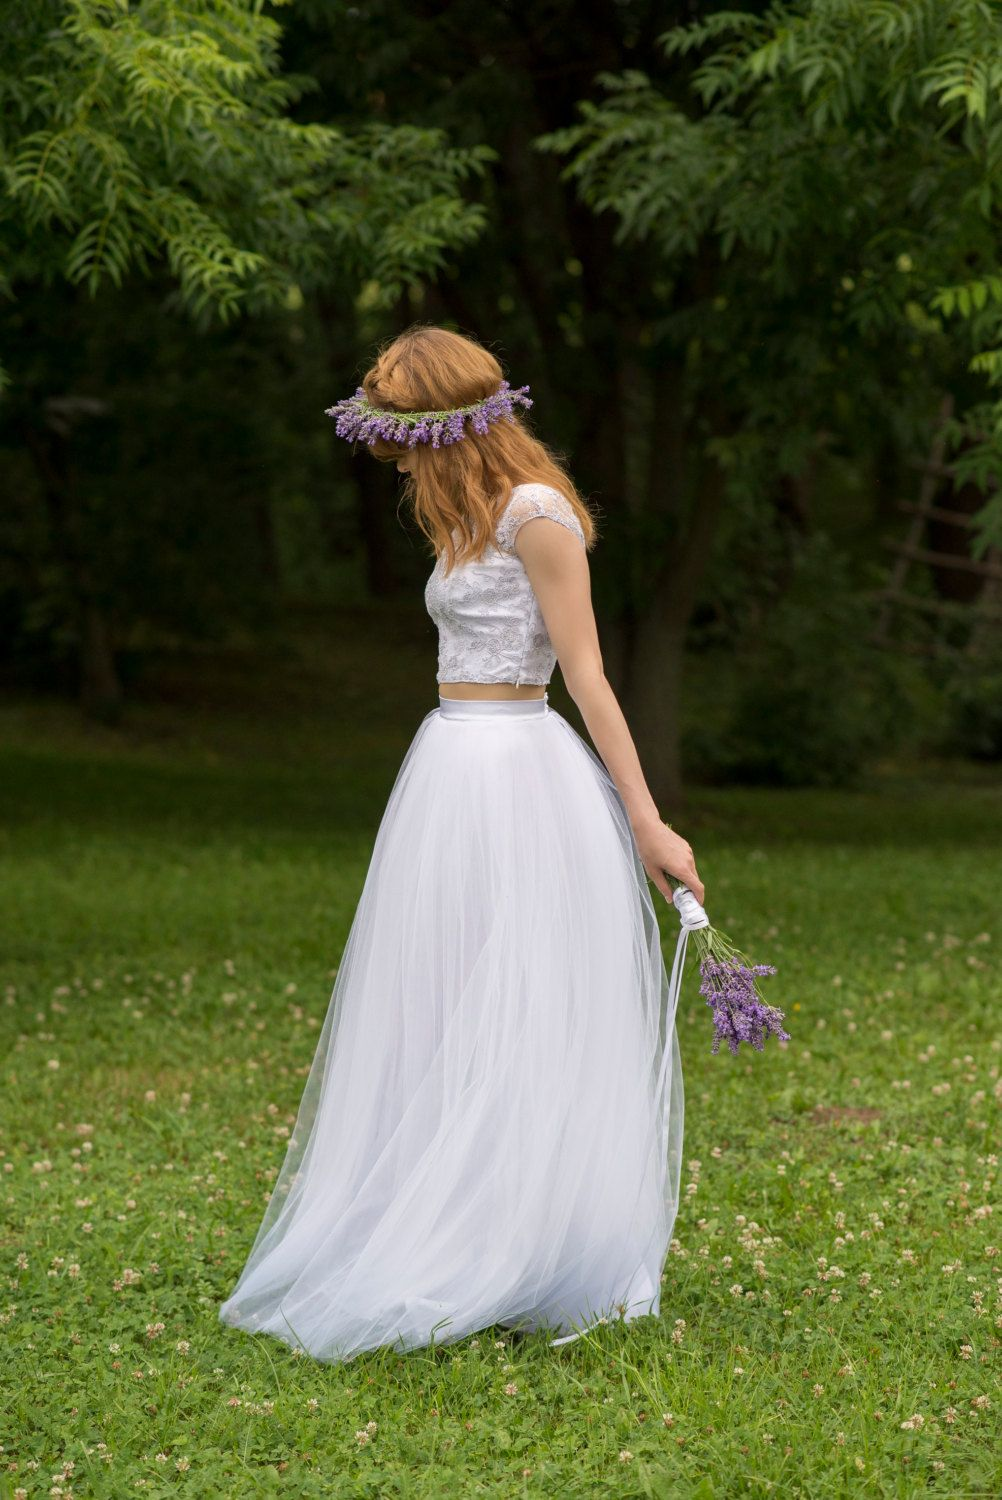 totally chic wedding dress separate ideas for unique brides a